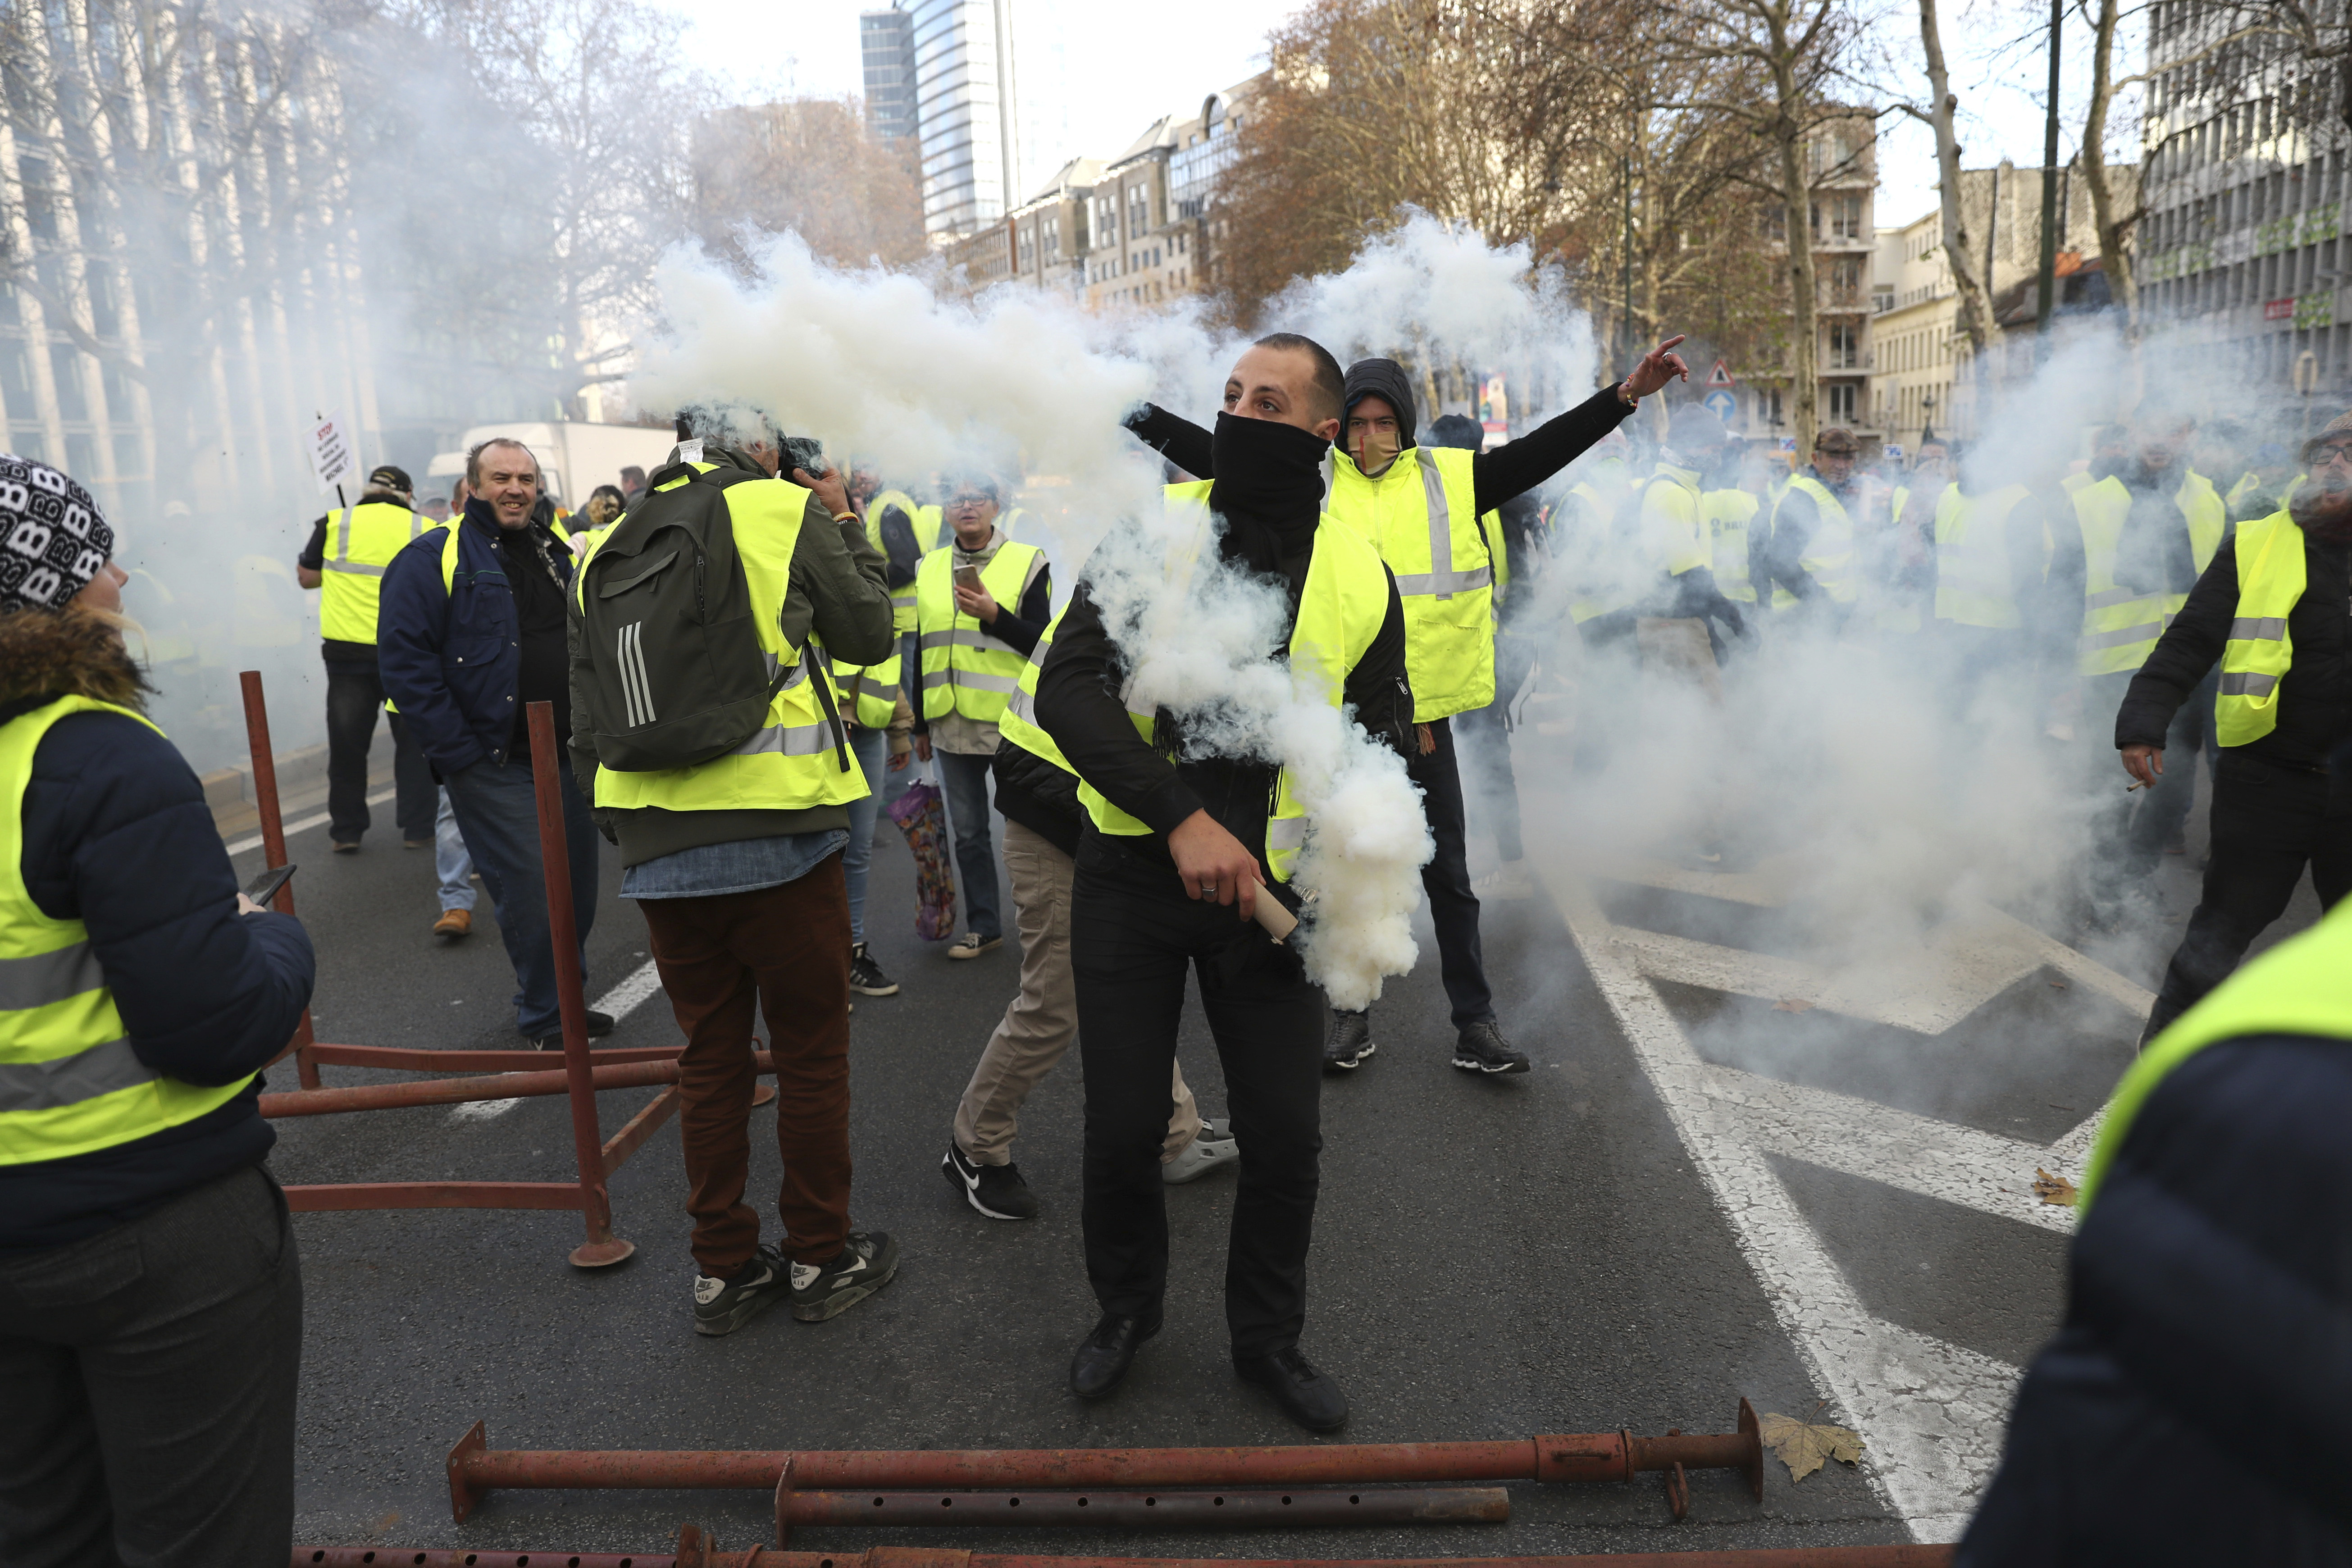 Brussels march mimics 'yellow jacket' France protests